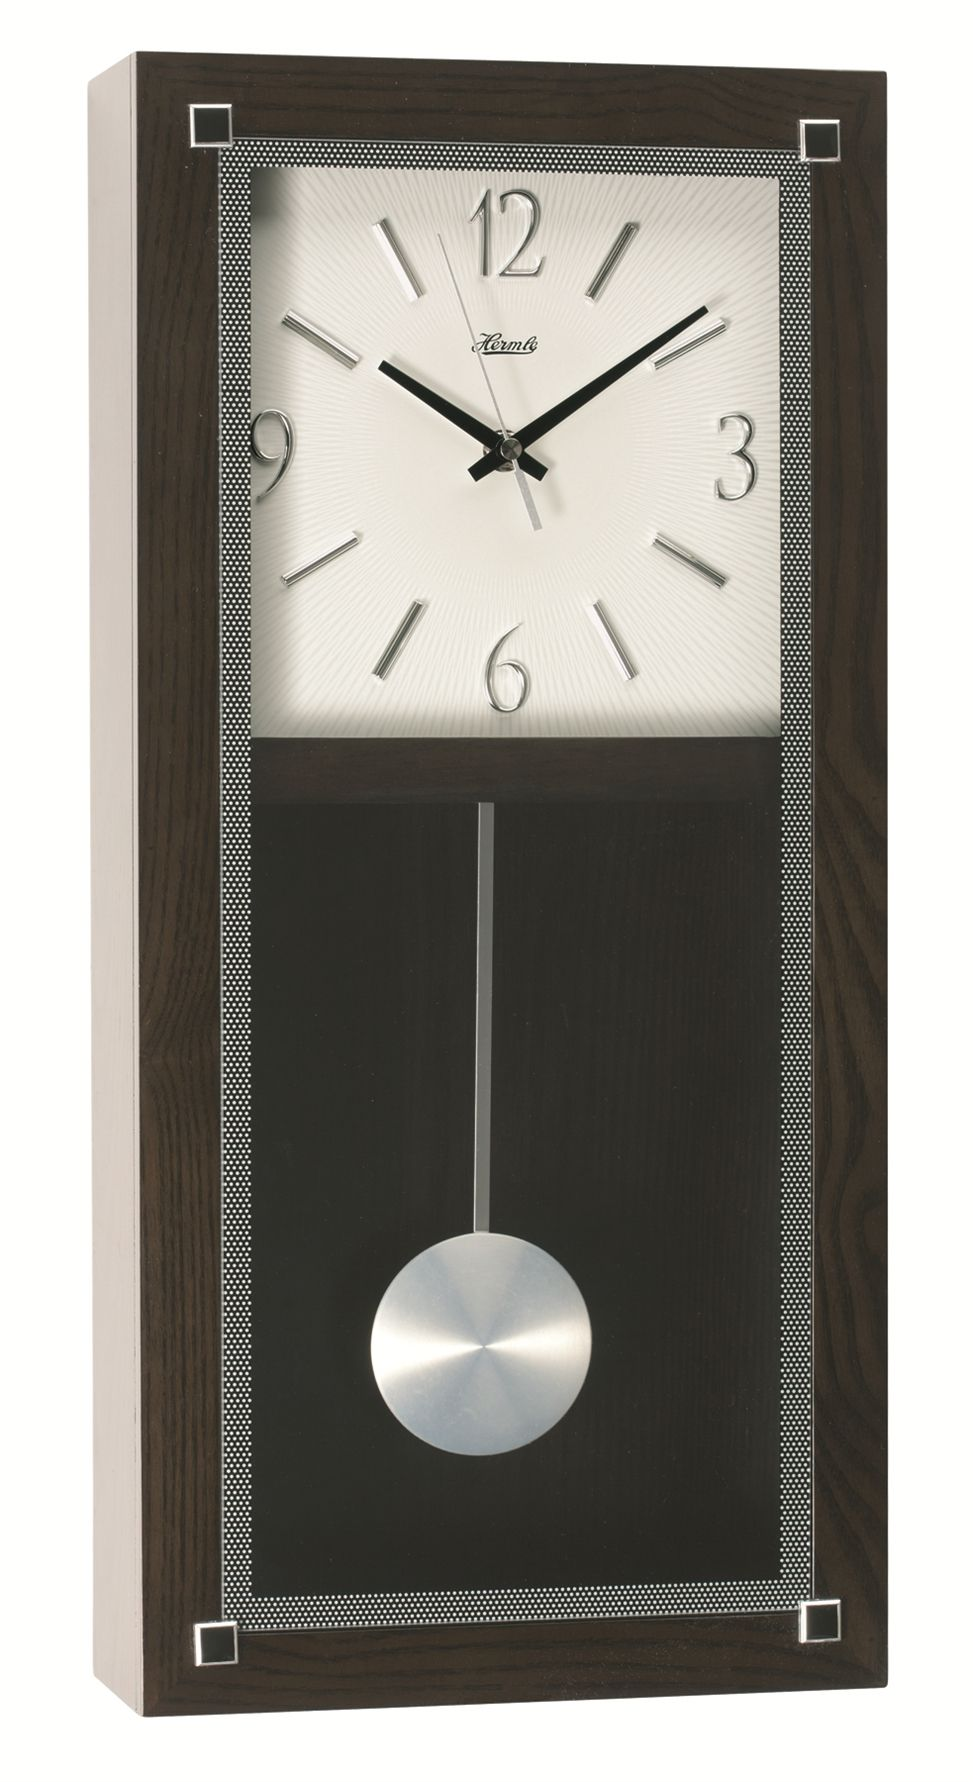 Hermle Silver Numerals Quartz Triple Chime Hastins 42005 The Well Made Clock Contemporary Wall Clock Clock Wall Clock